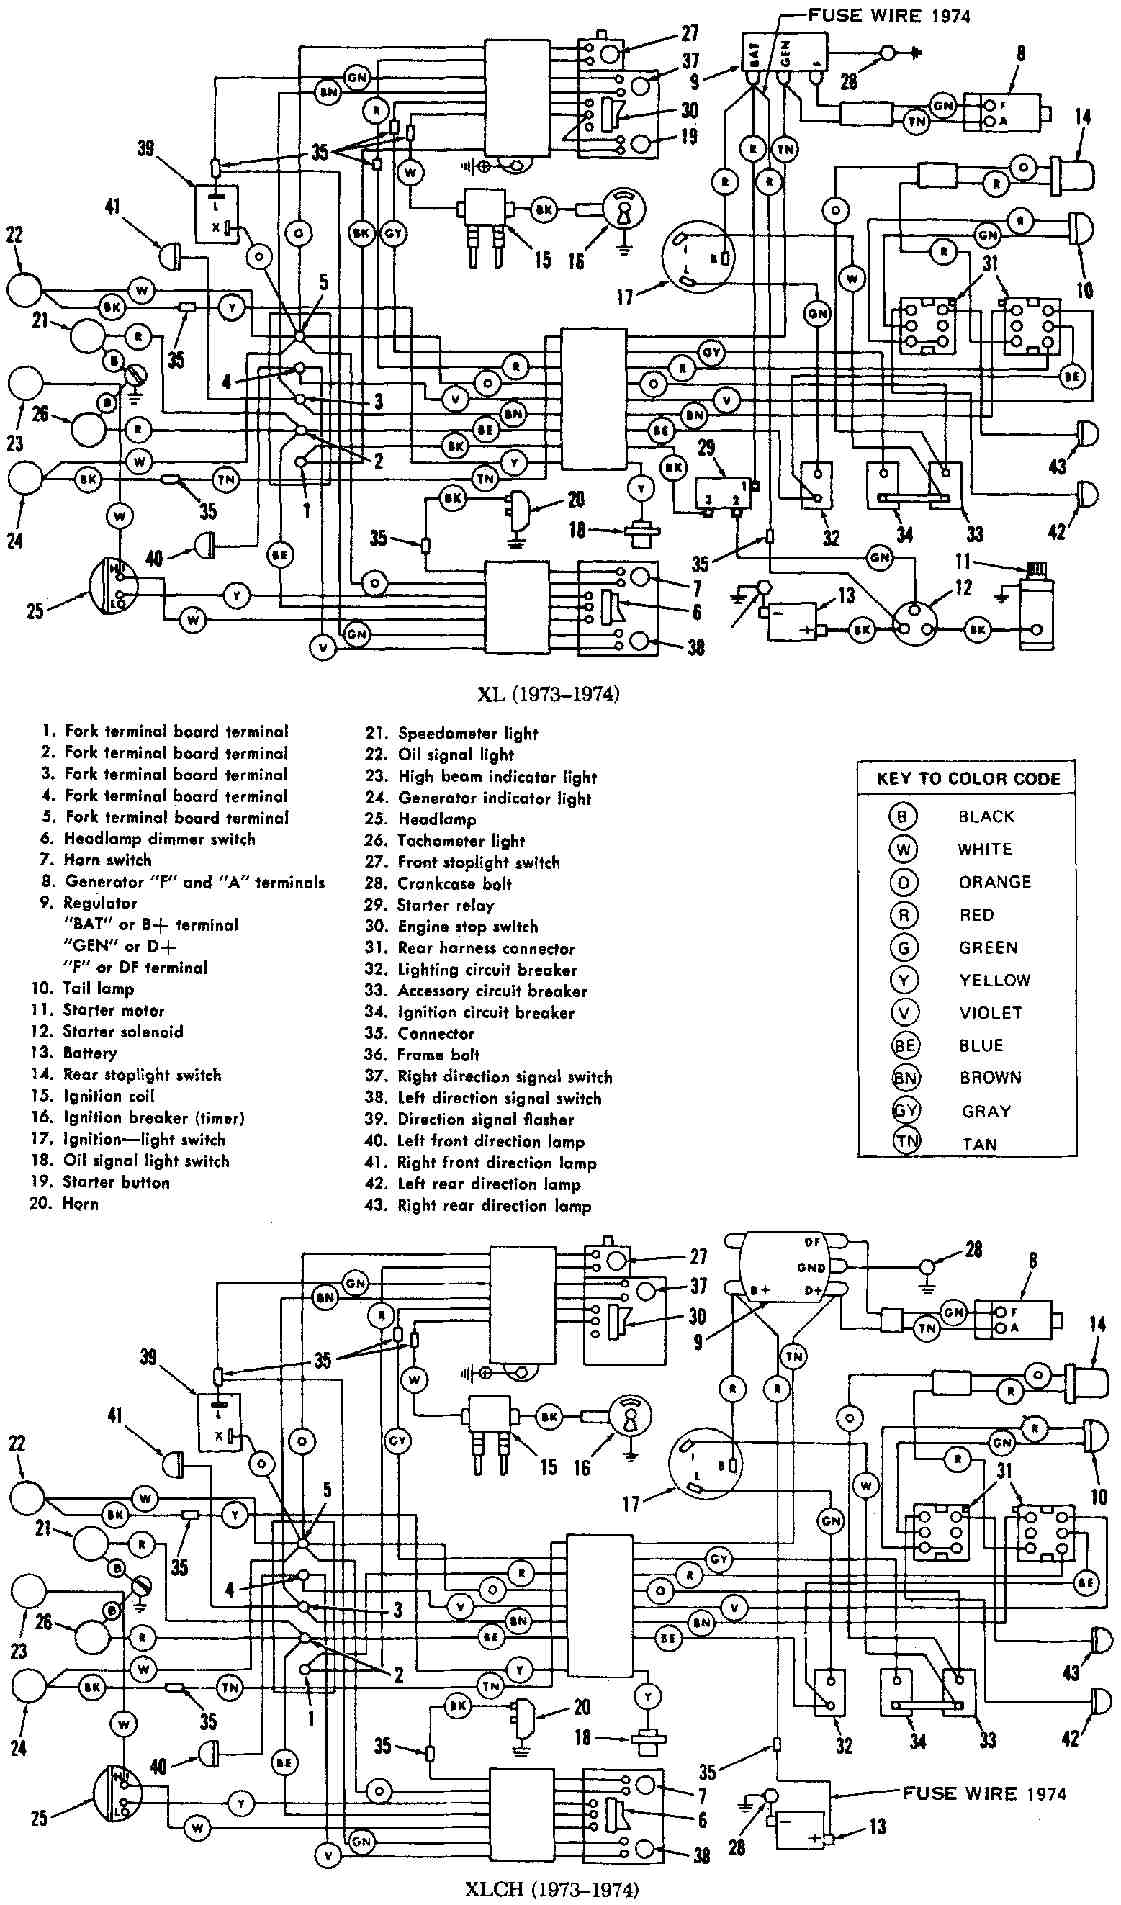 hight resolution of 1973 harley golf cart wiring diagram wiring diagrams schema rh 10 verena hoegerl de 1992 harley